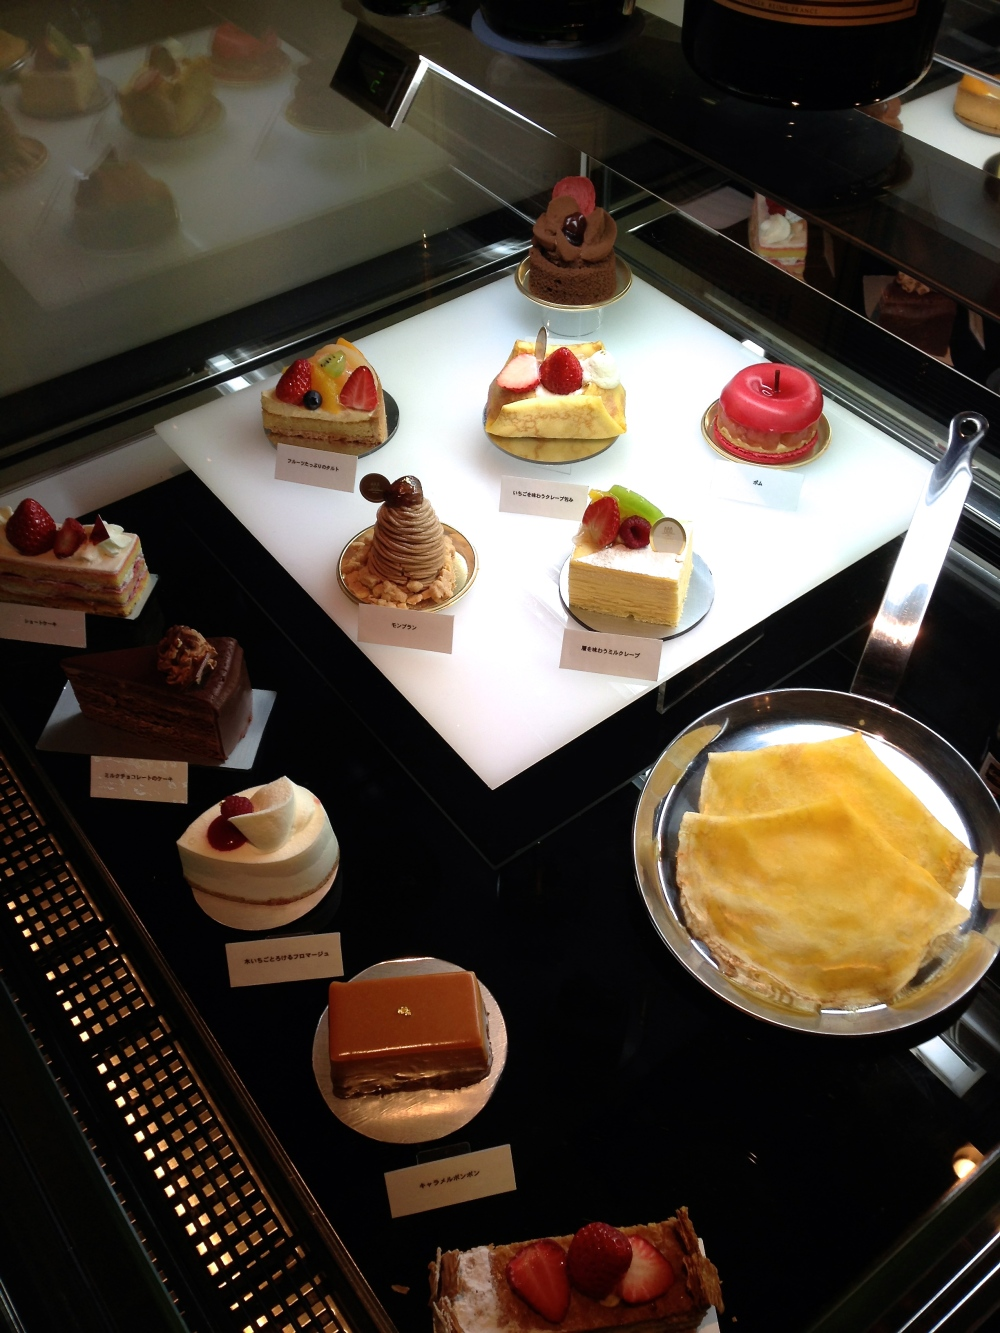 The pastry display